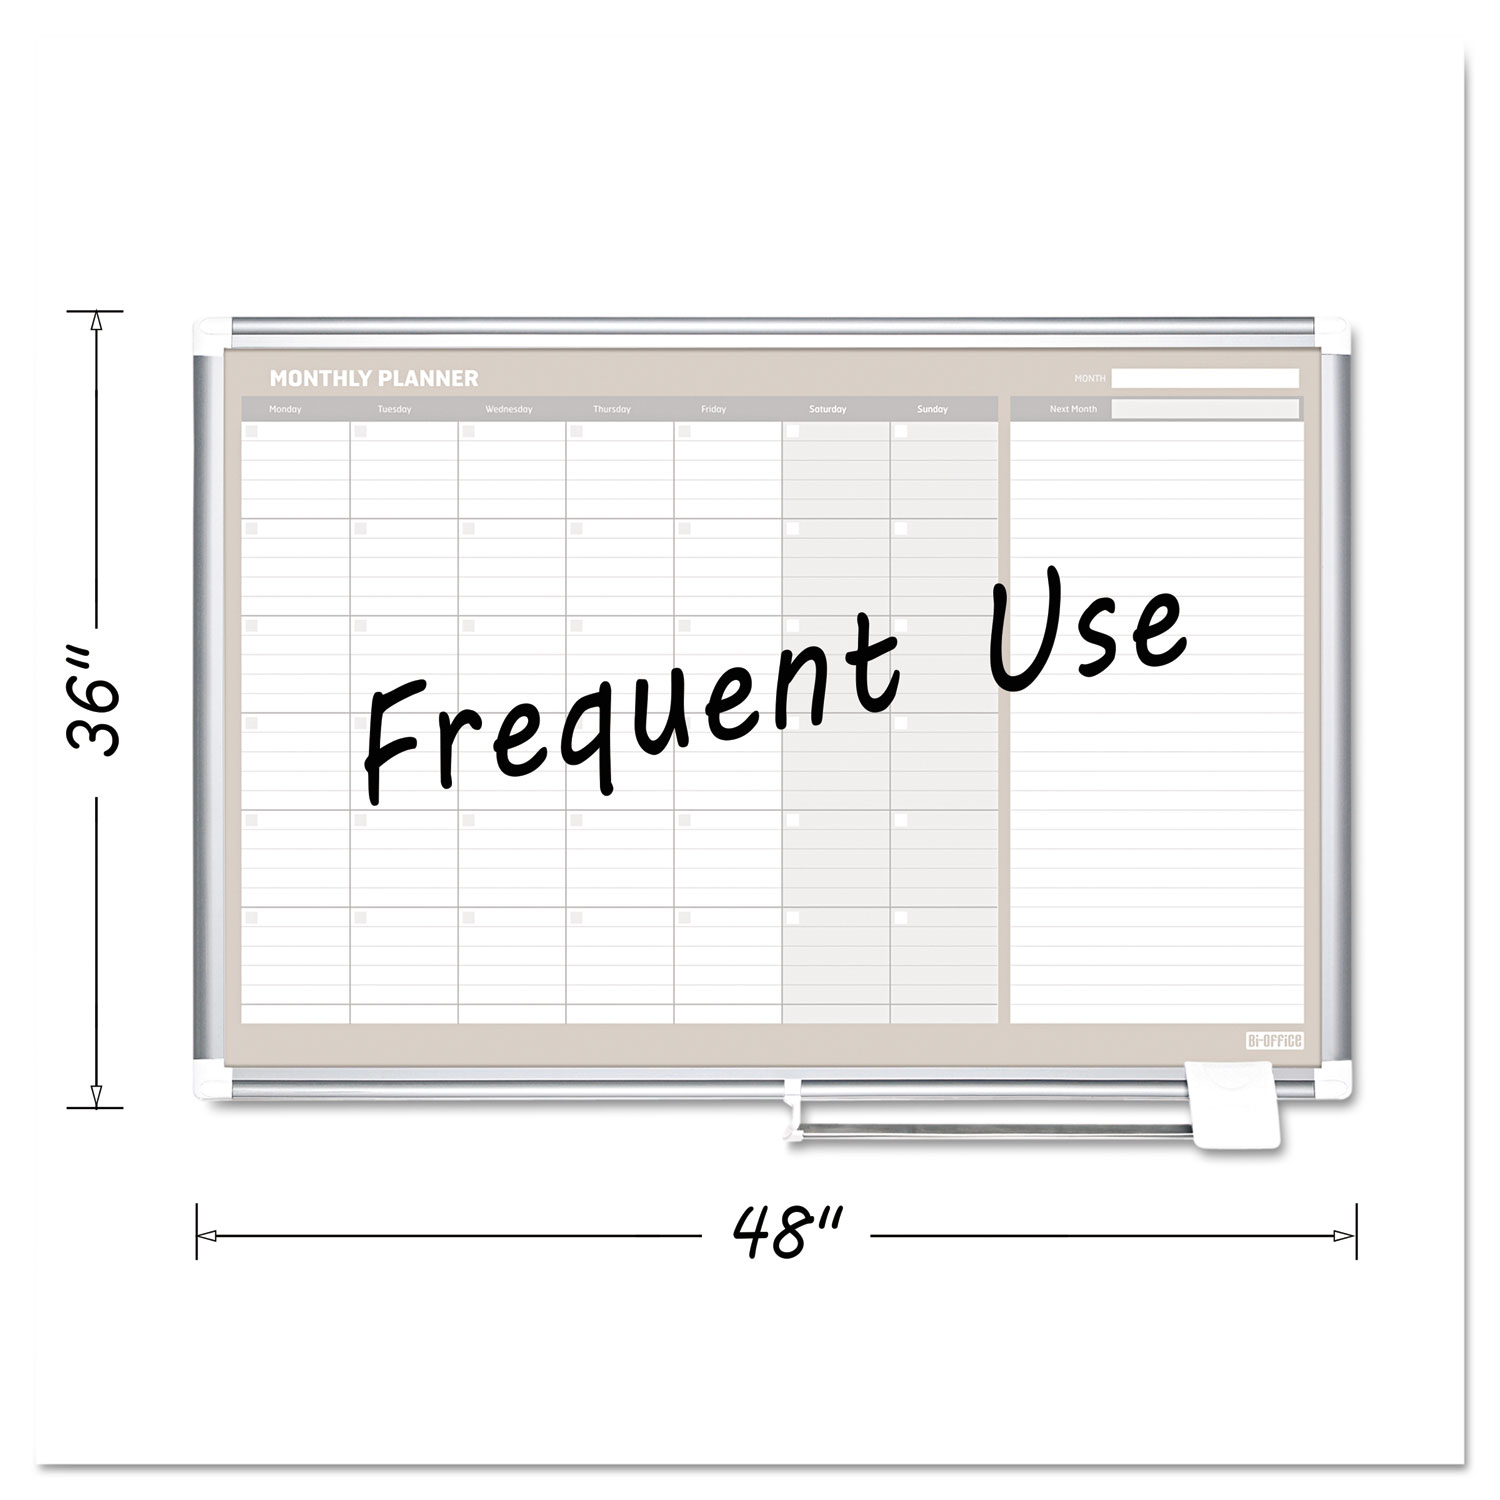 4 Month Planner, 48x36, White/Silver